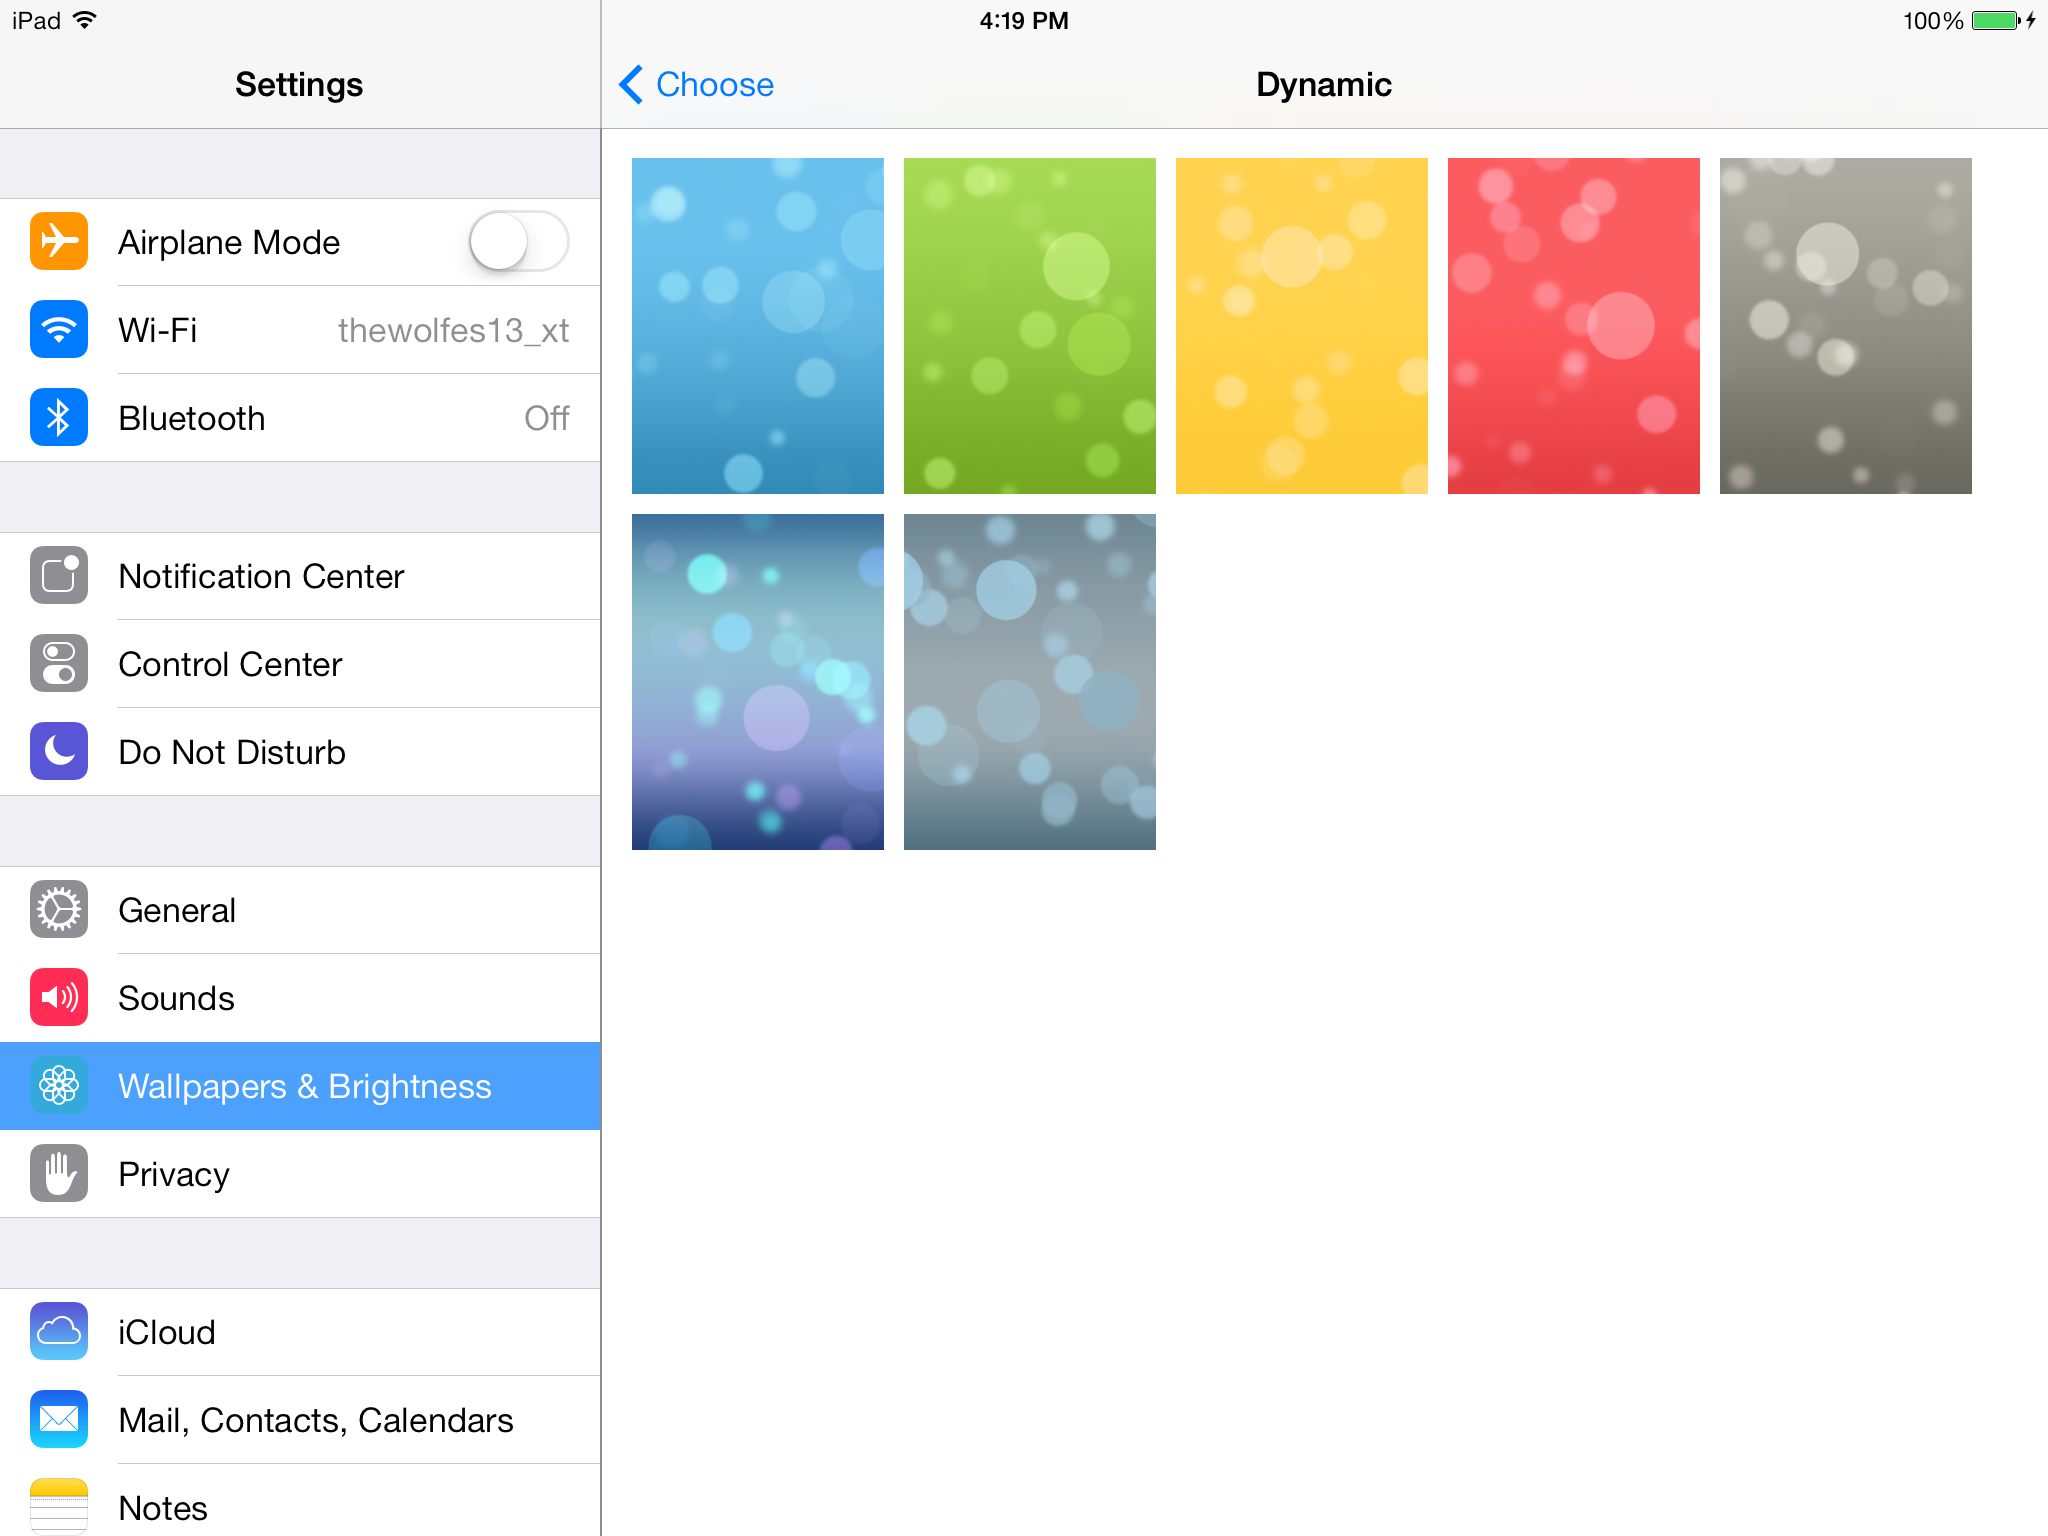 New backgrounds in iOS 7